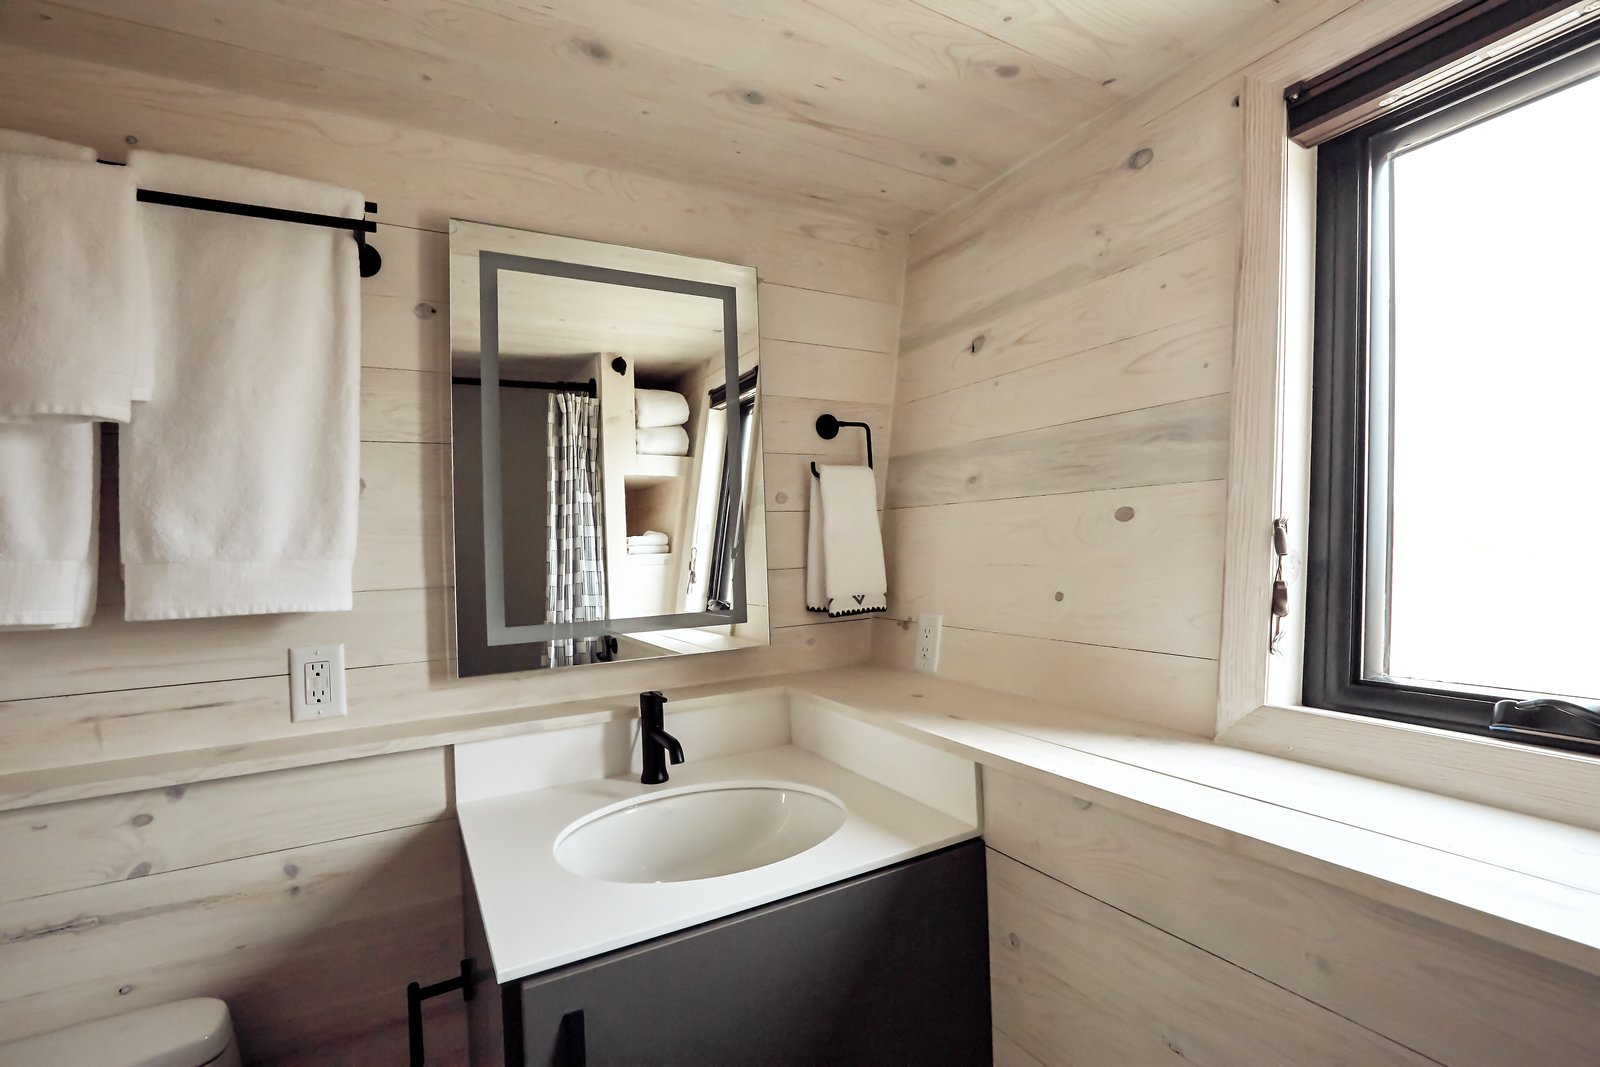 The pine ledge wraps around creating useful storage. Integrated linen nooks can be seen in the lighted mirror's reflection. The bathroom features a one-piece toilet, 30x60 tub and Kohler wall surrounds.  Land Ark RV - Drake by Brian Buzarde